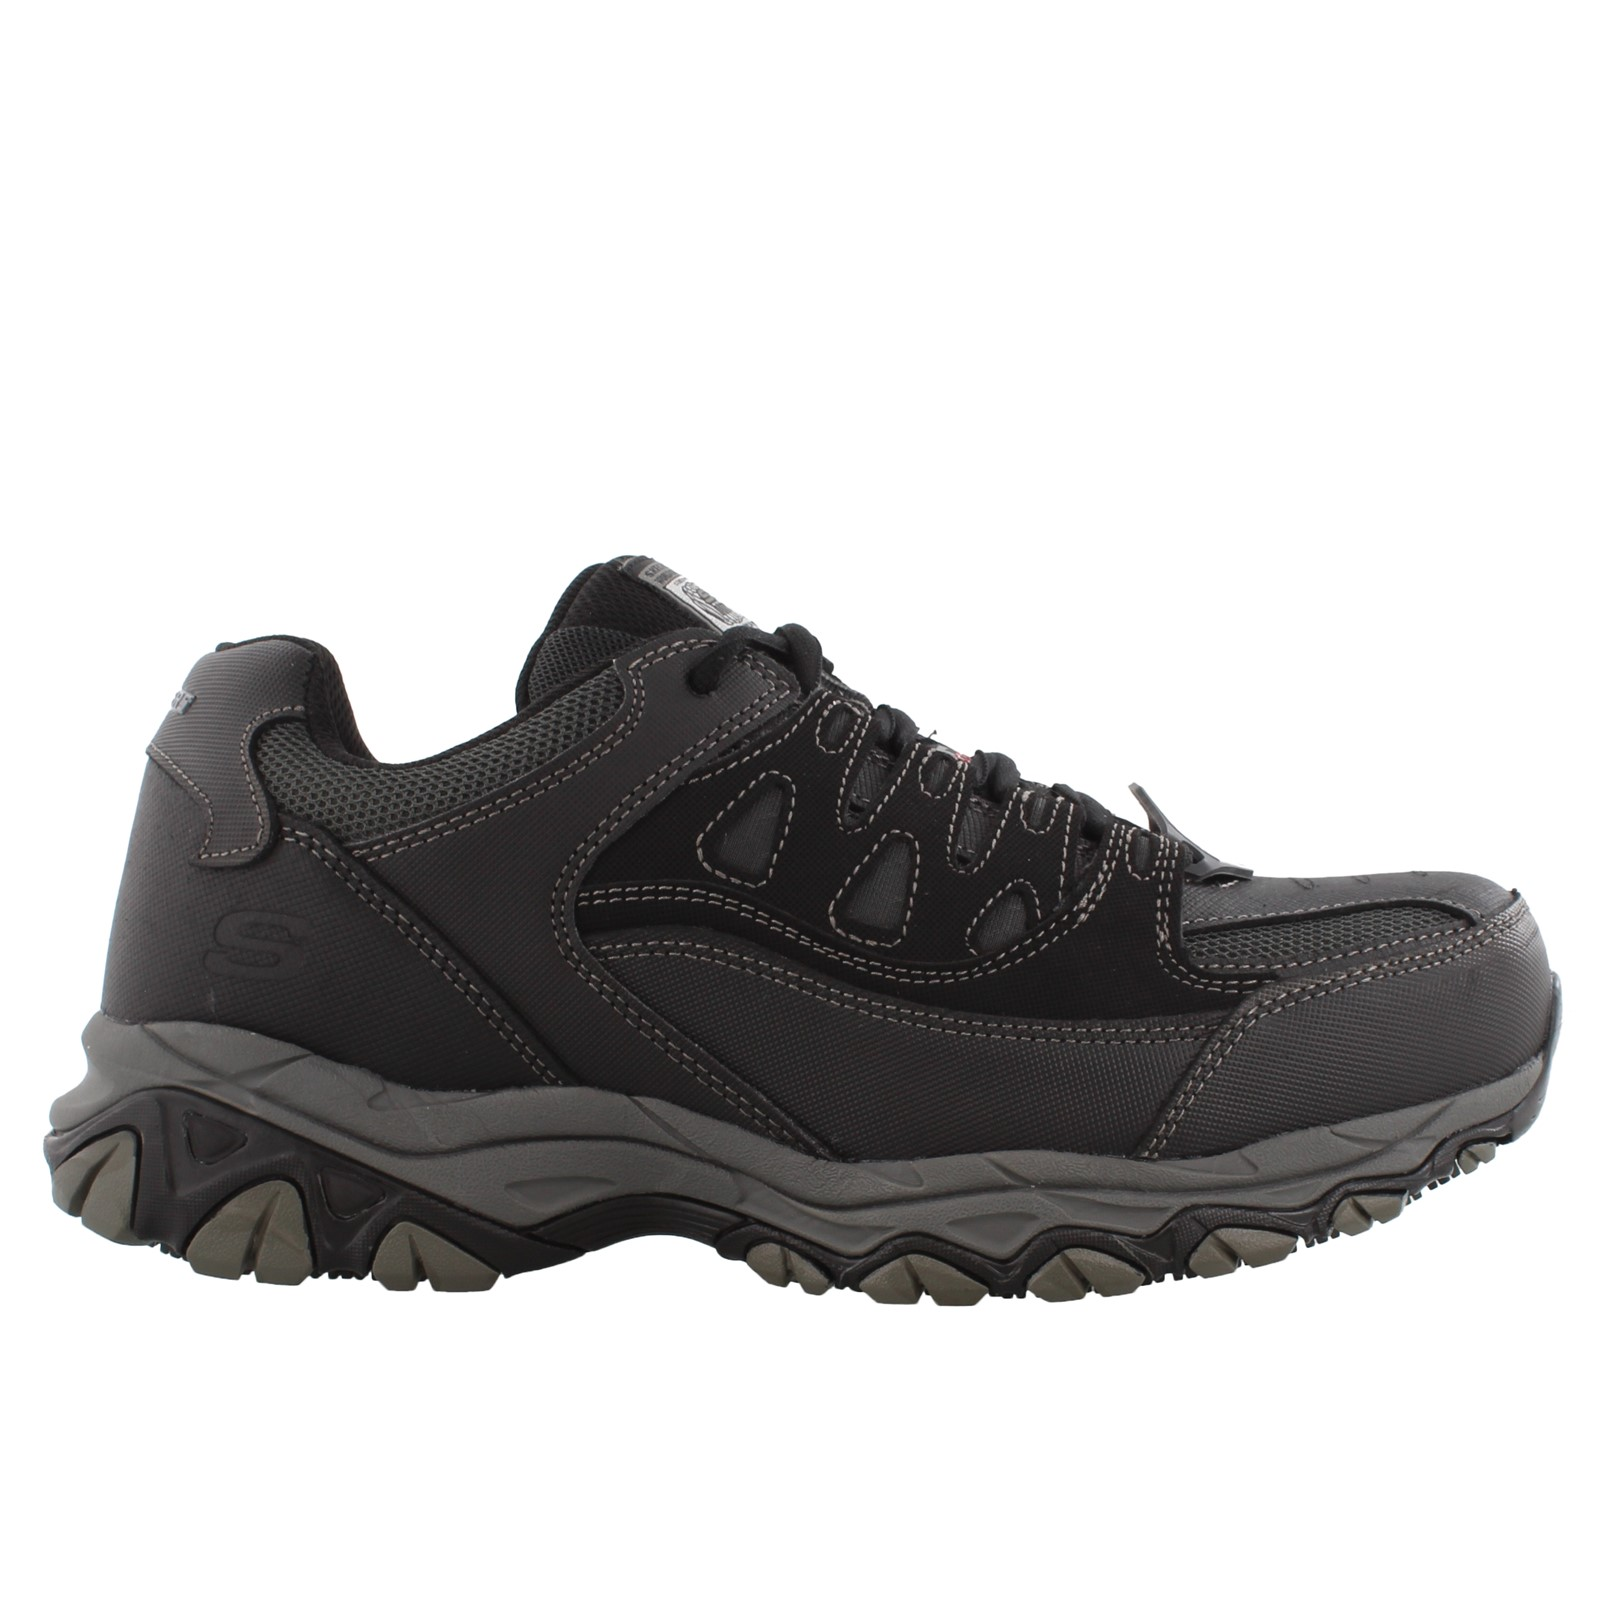 Men's Skechers, Holdredge Steel Toe Lace up Work Shoe